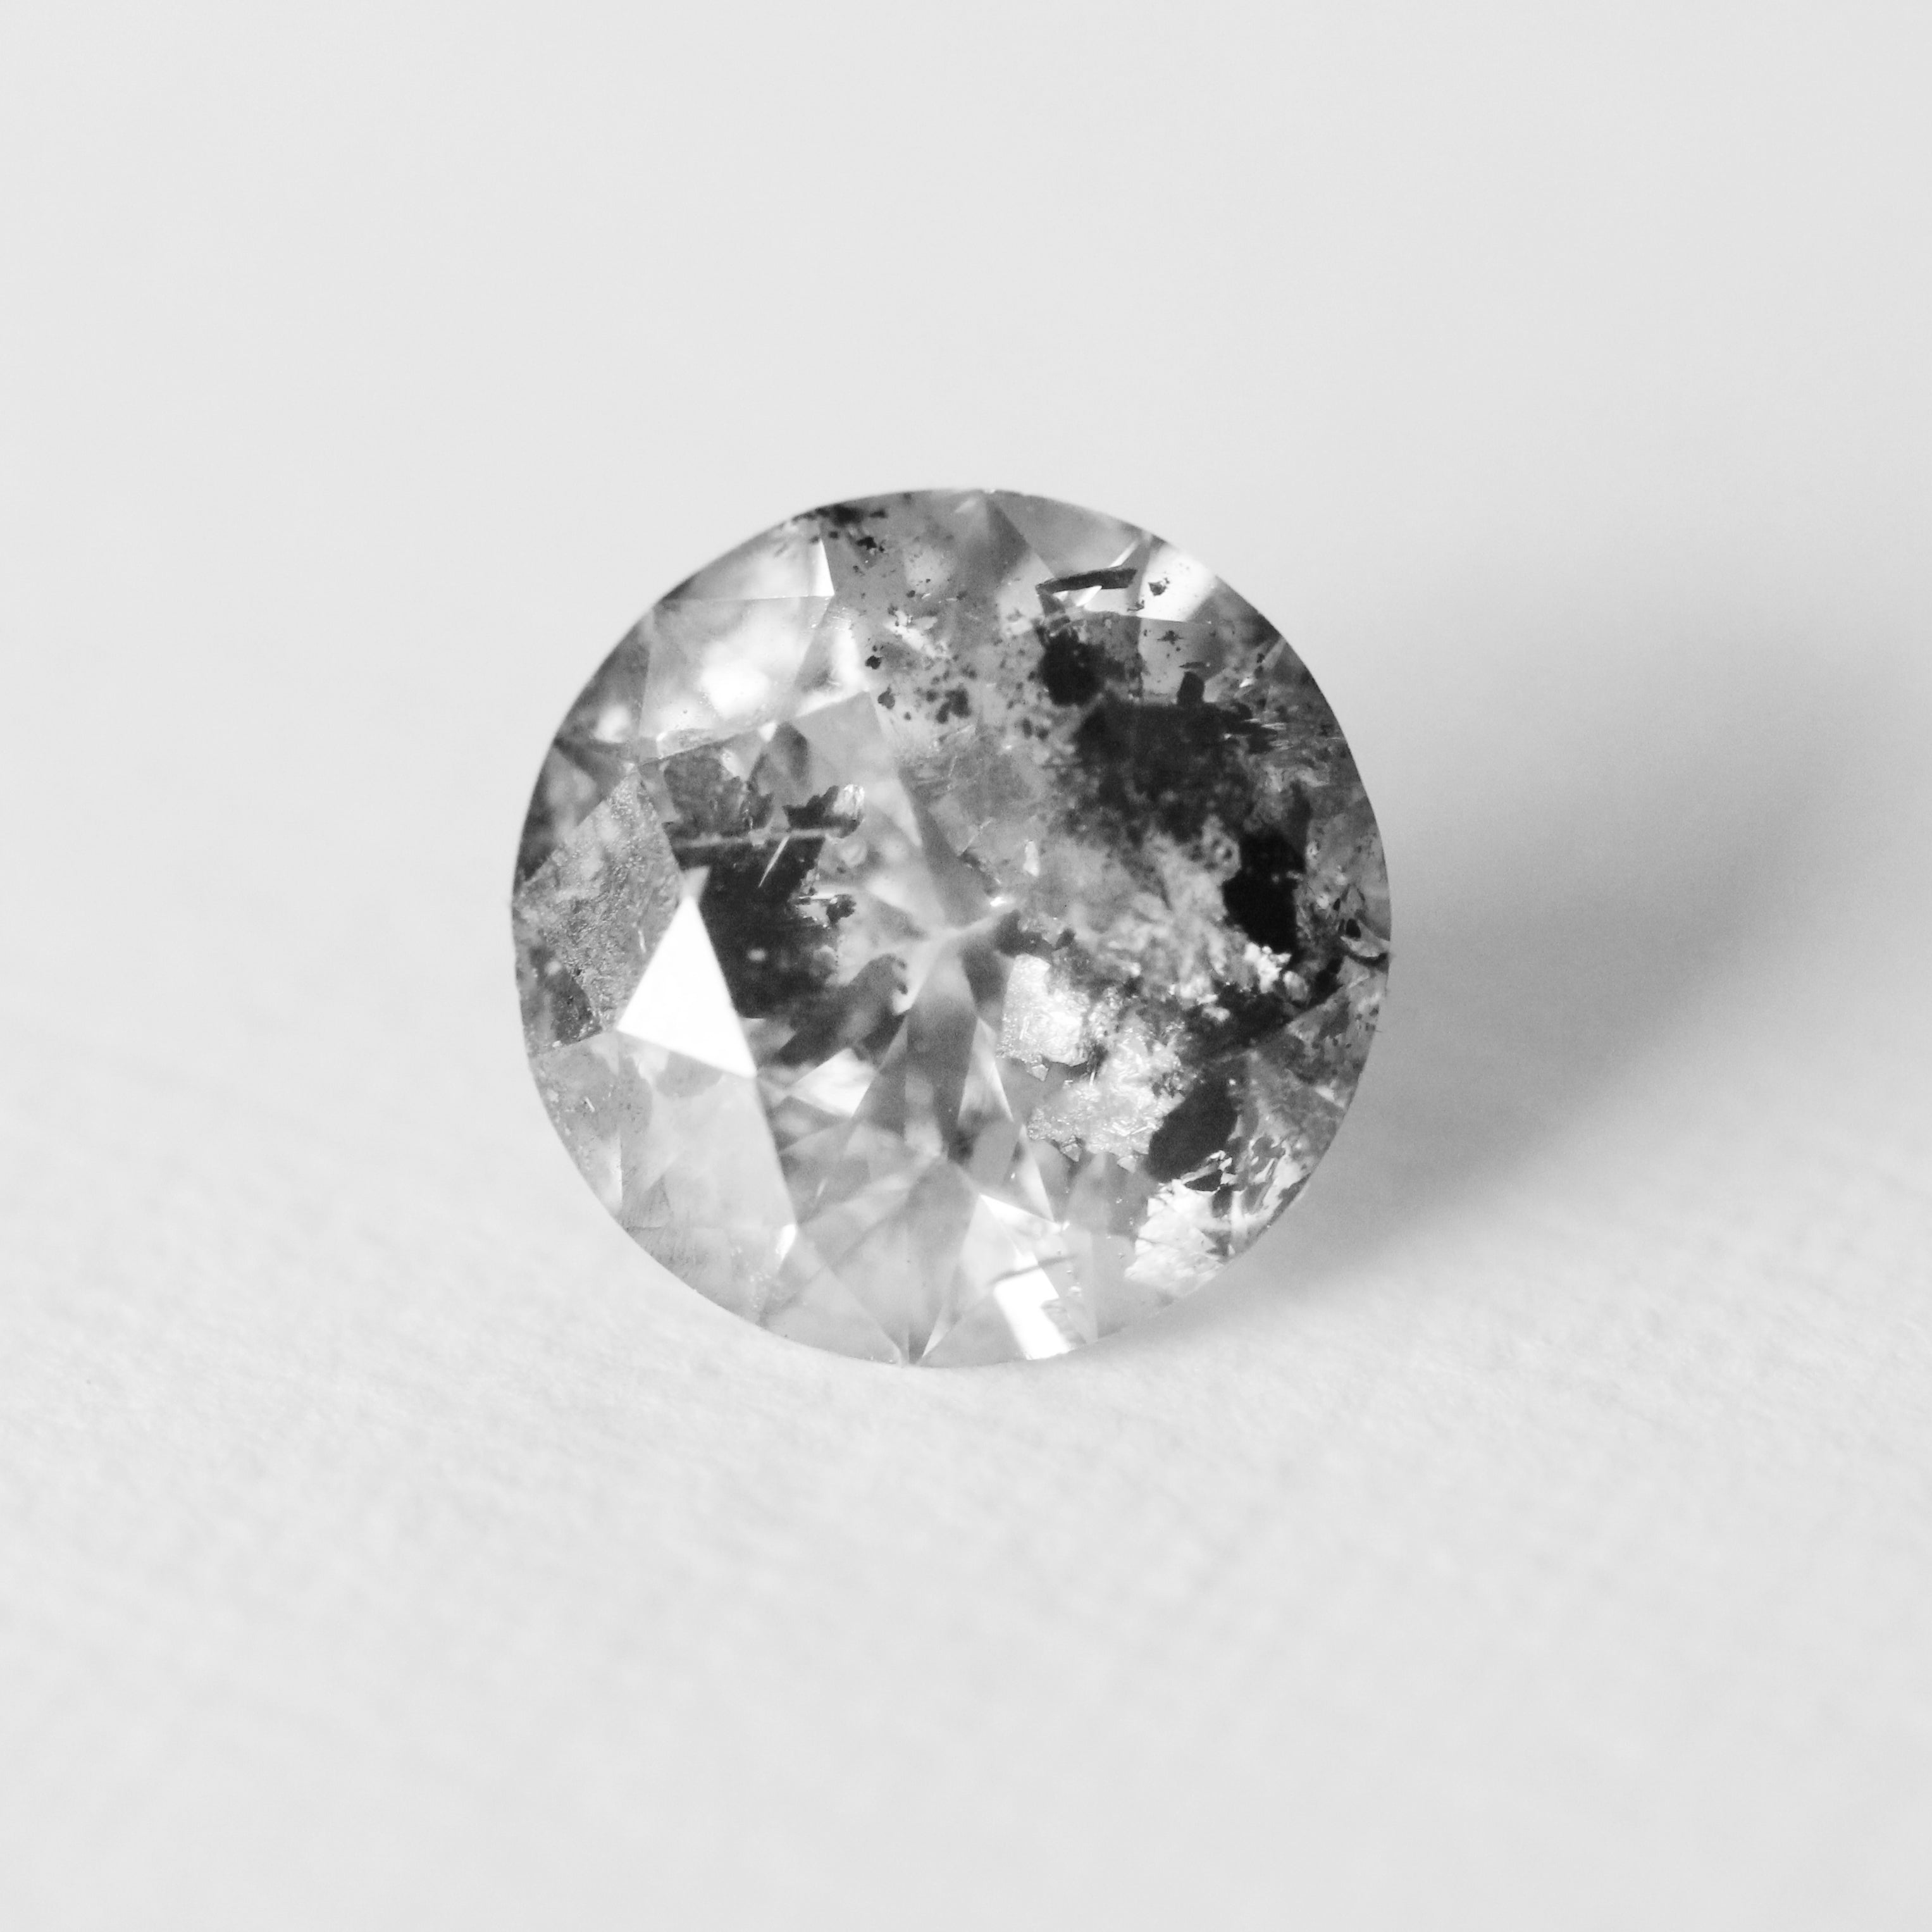 1.14ct Brilliant Round Celestial Diamond for Custom Work - Inventory Code BW114